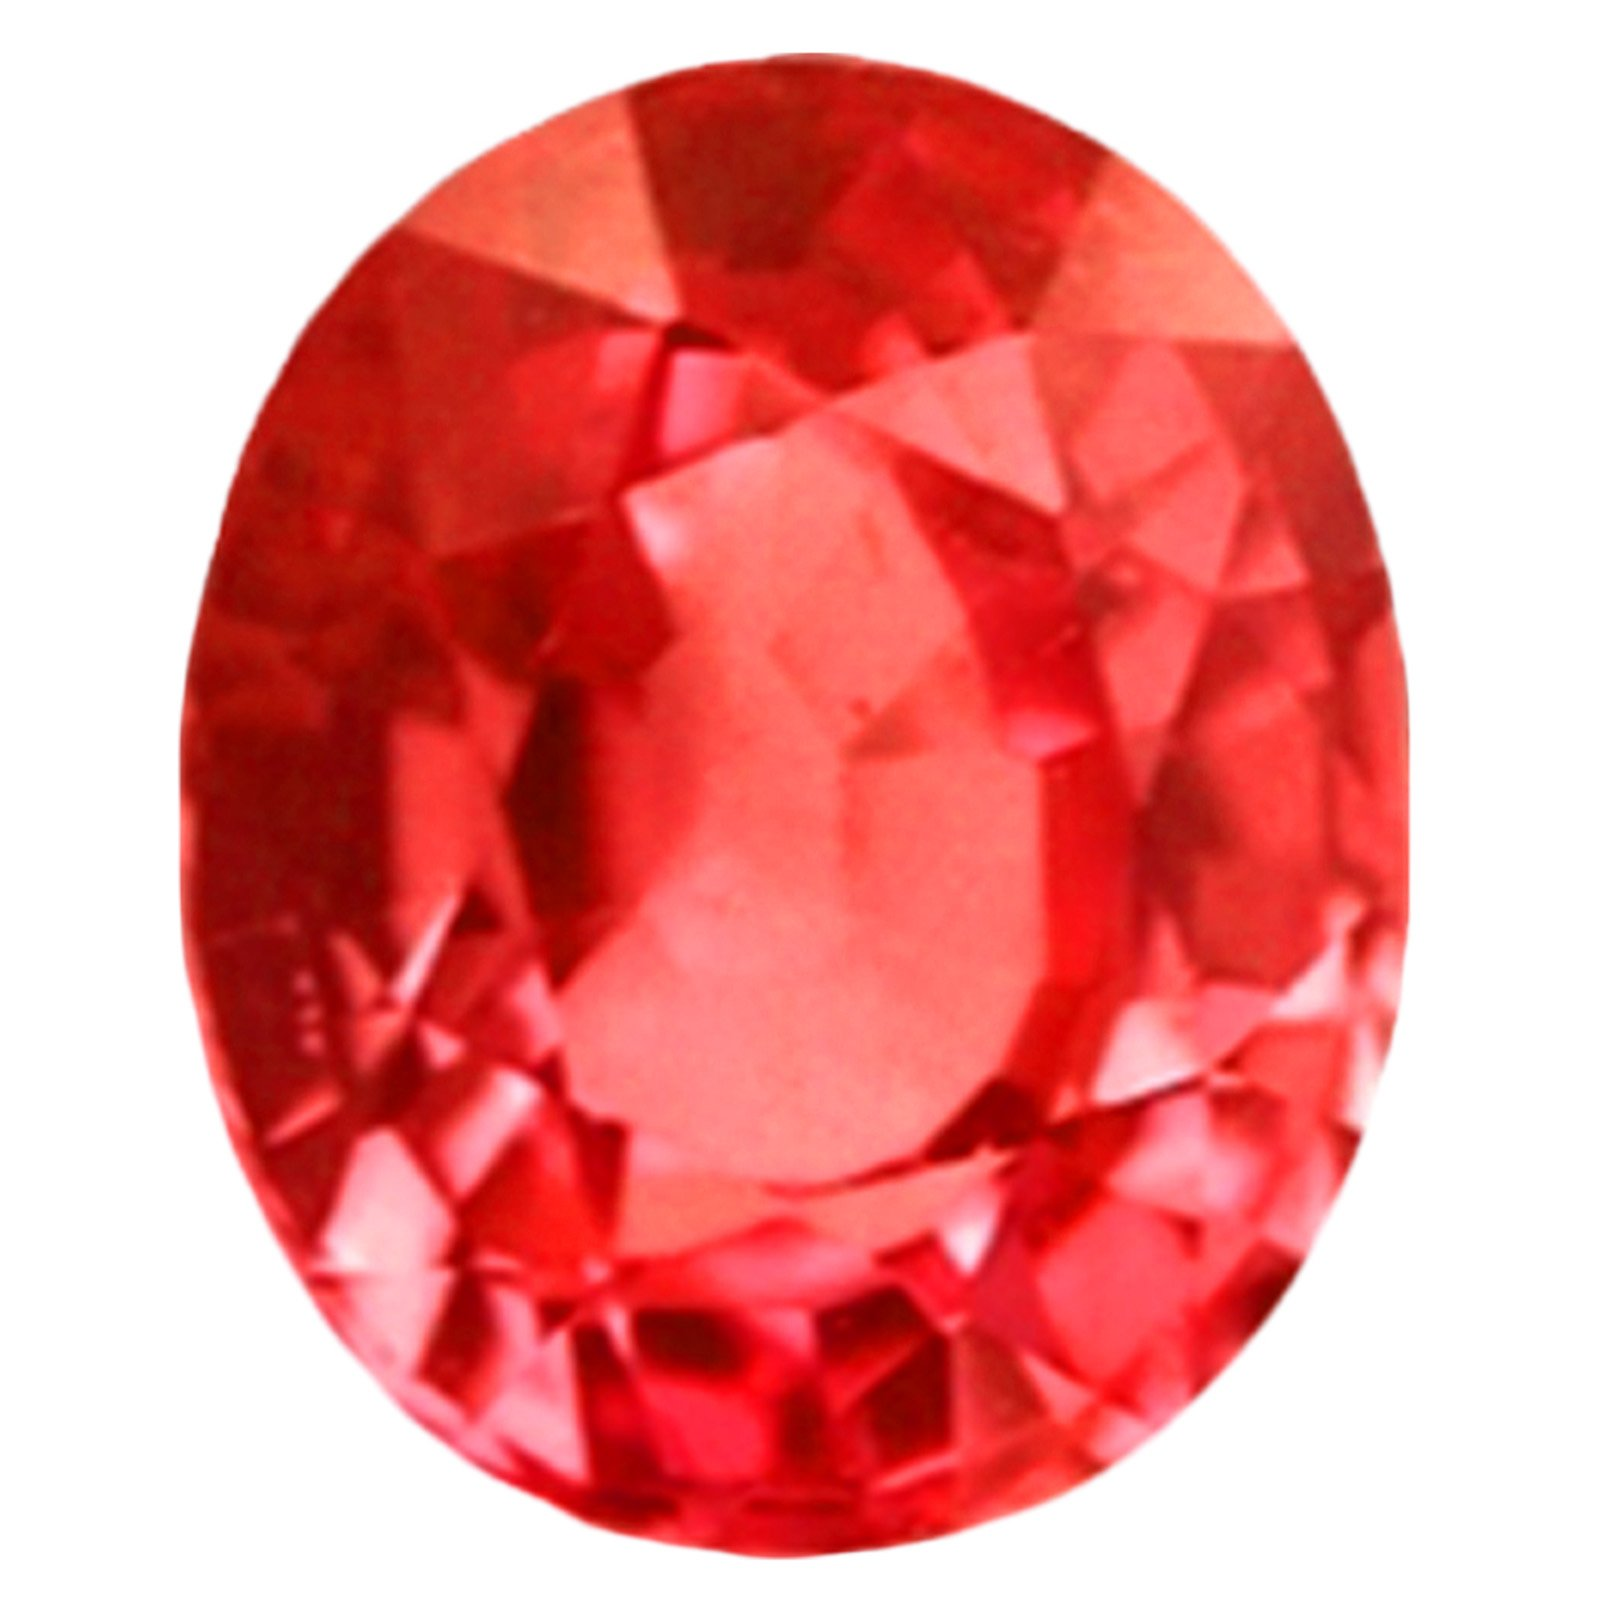 1.51 Ct. Natural Ruby from Madagascar - Oval Cut - Loose Gem, Gemstone - Heated only - NOT GLASS FILLED by Seattle Gem